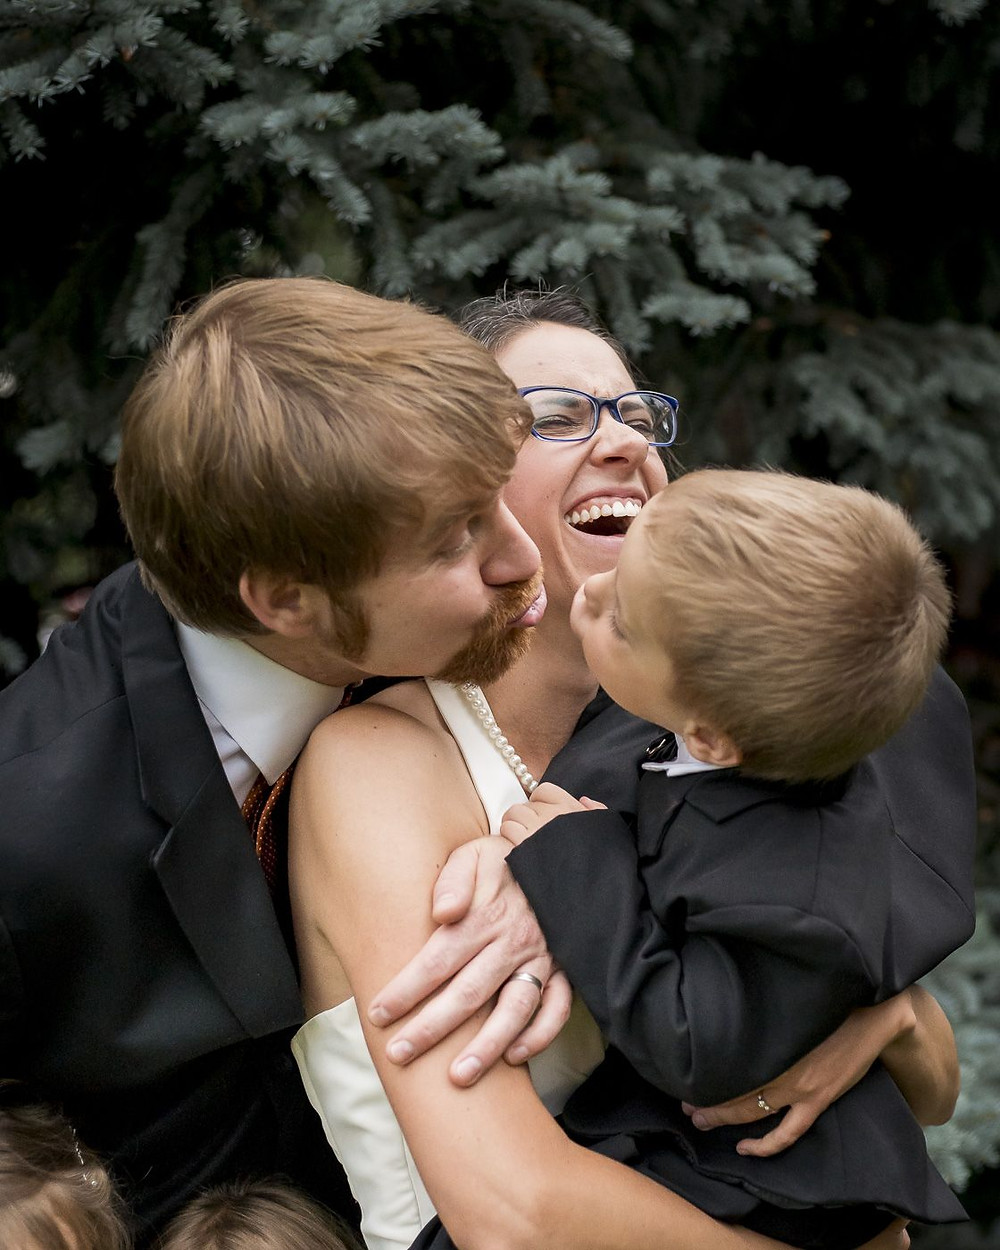 Husband kisses son in mother's arms, laughing, Arvada, Colorado